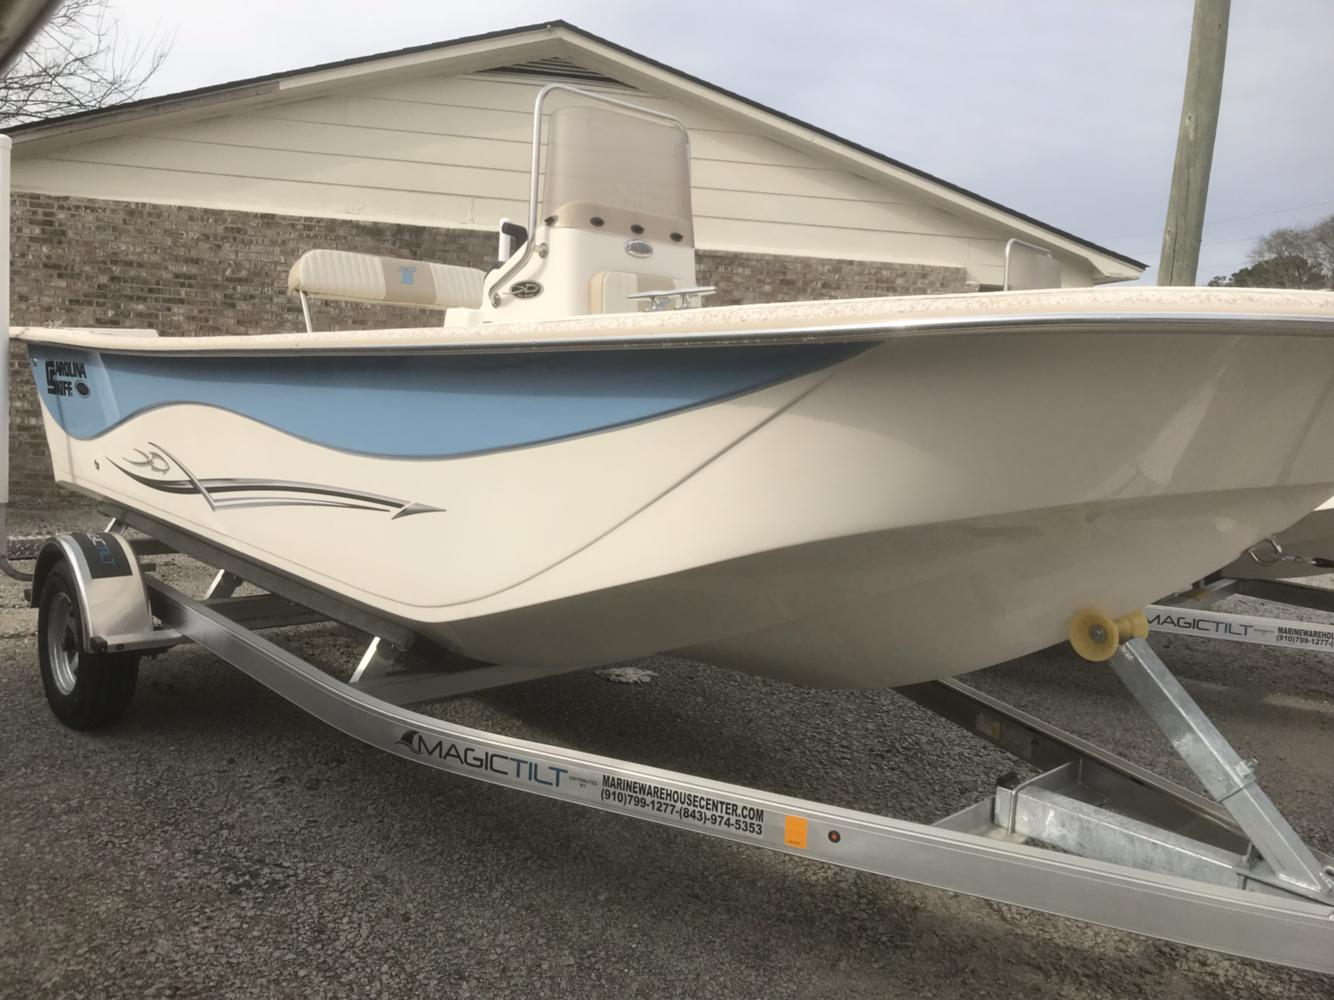 Inventory from Carolina Skiff and Southern Skimmer Marine